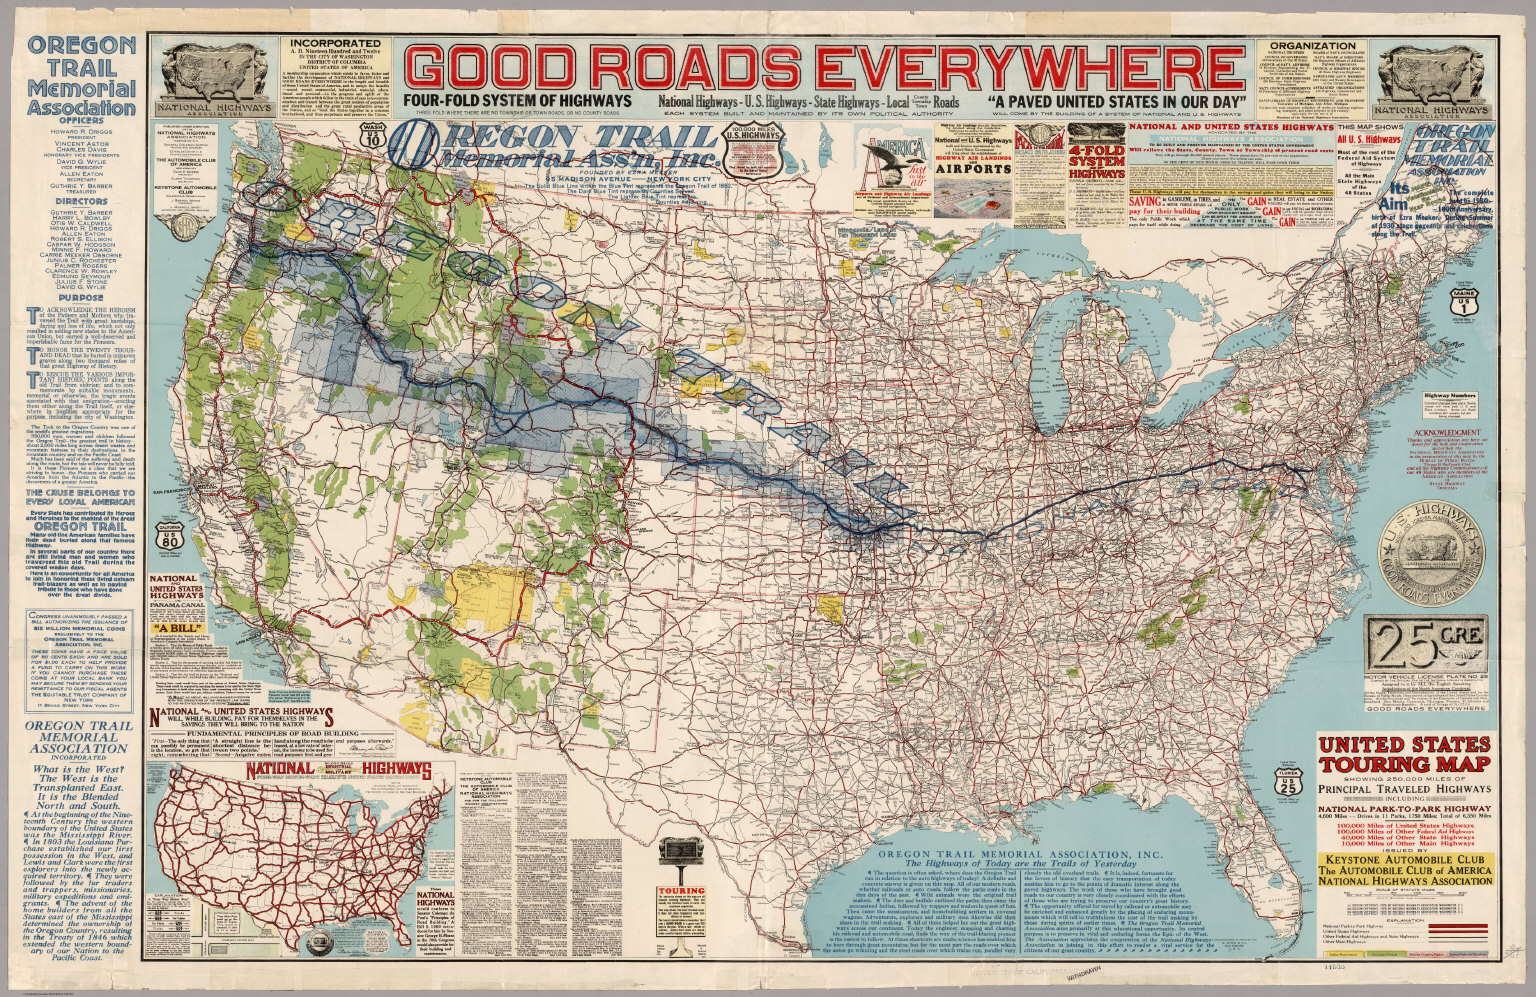 United States Touring Map David Rumsey Historical Map Collection - Map of national parks in united states